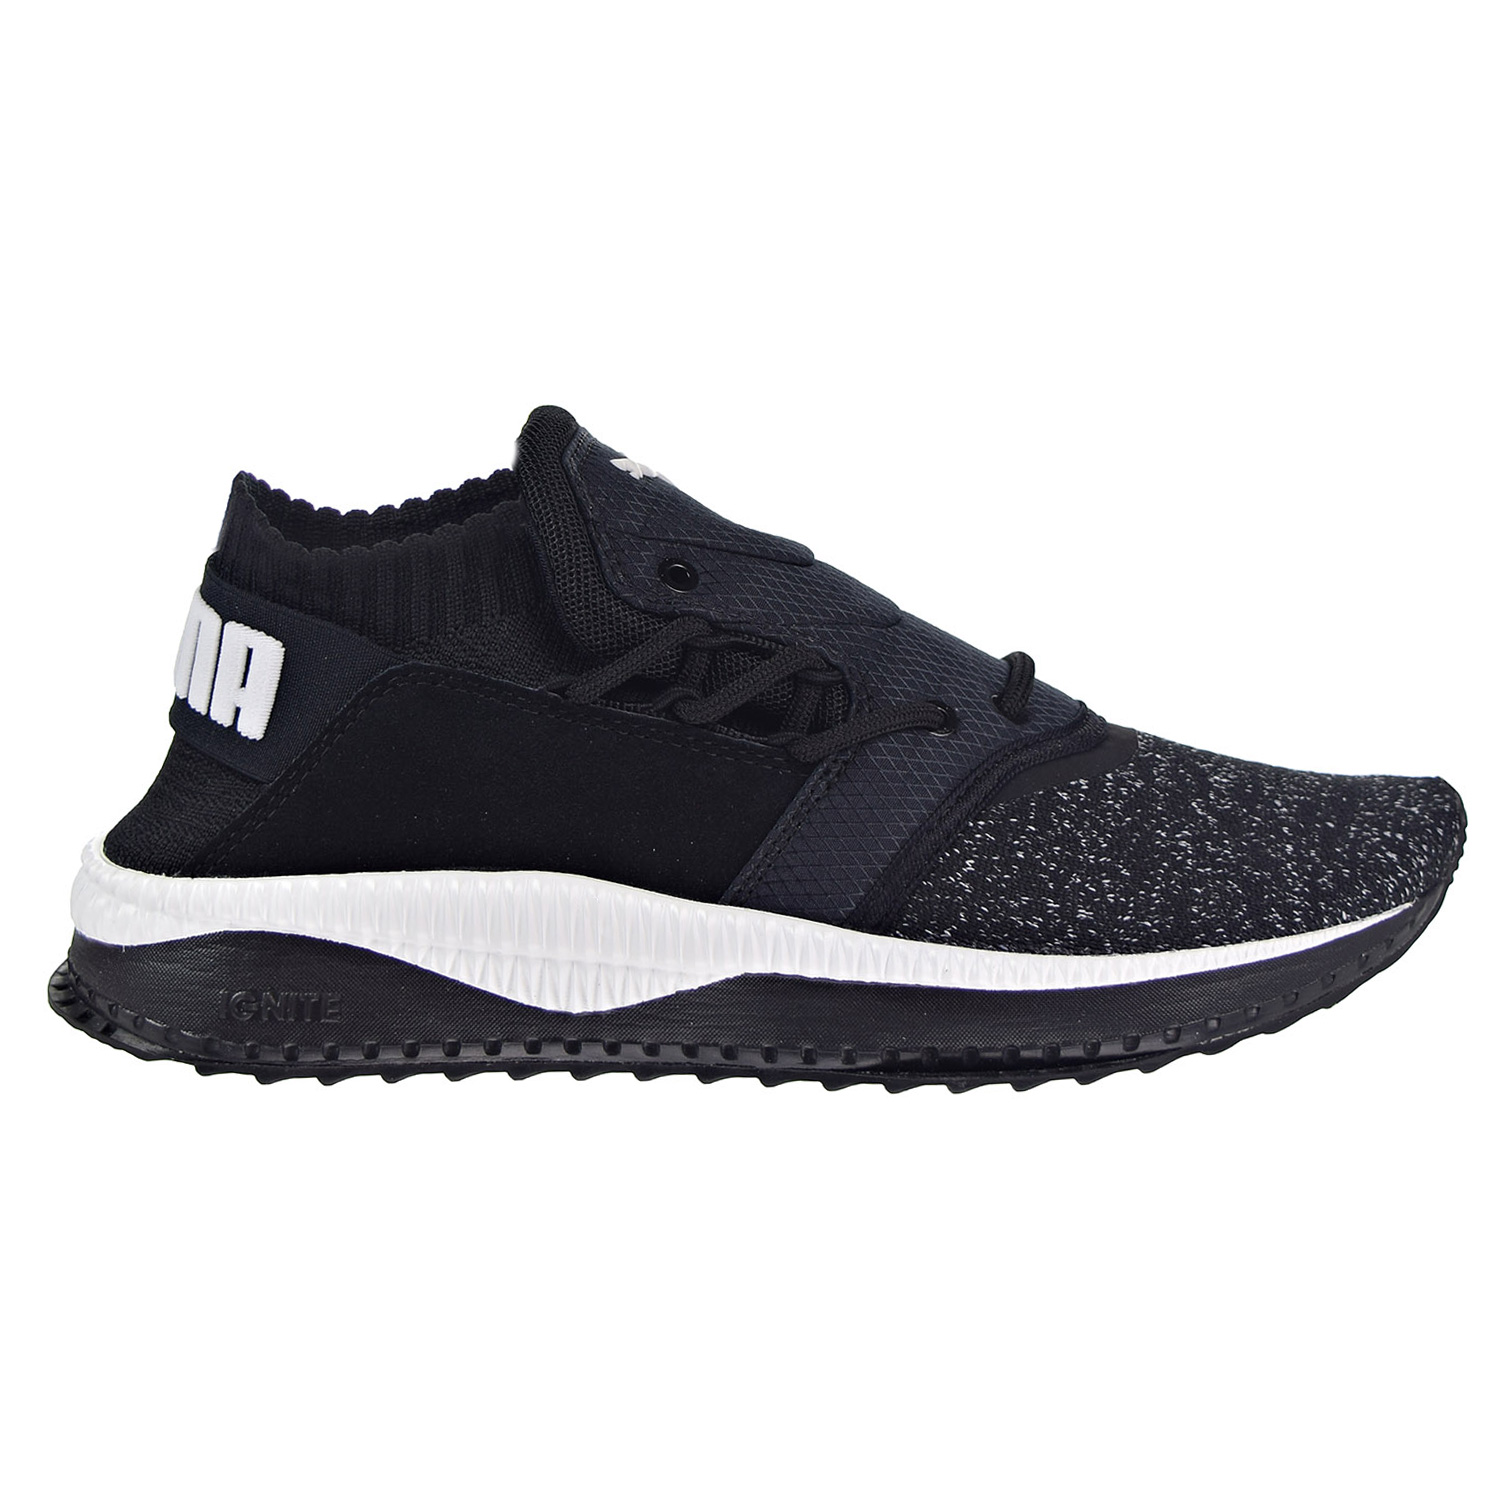 7a2b9e2c53655c Details about Puma Tsugi Shinsei Nocturnal Men s Shoes Puma Black White  363760-01